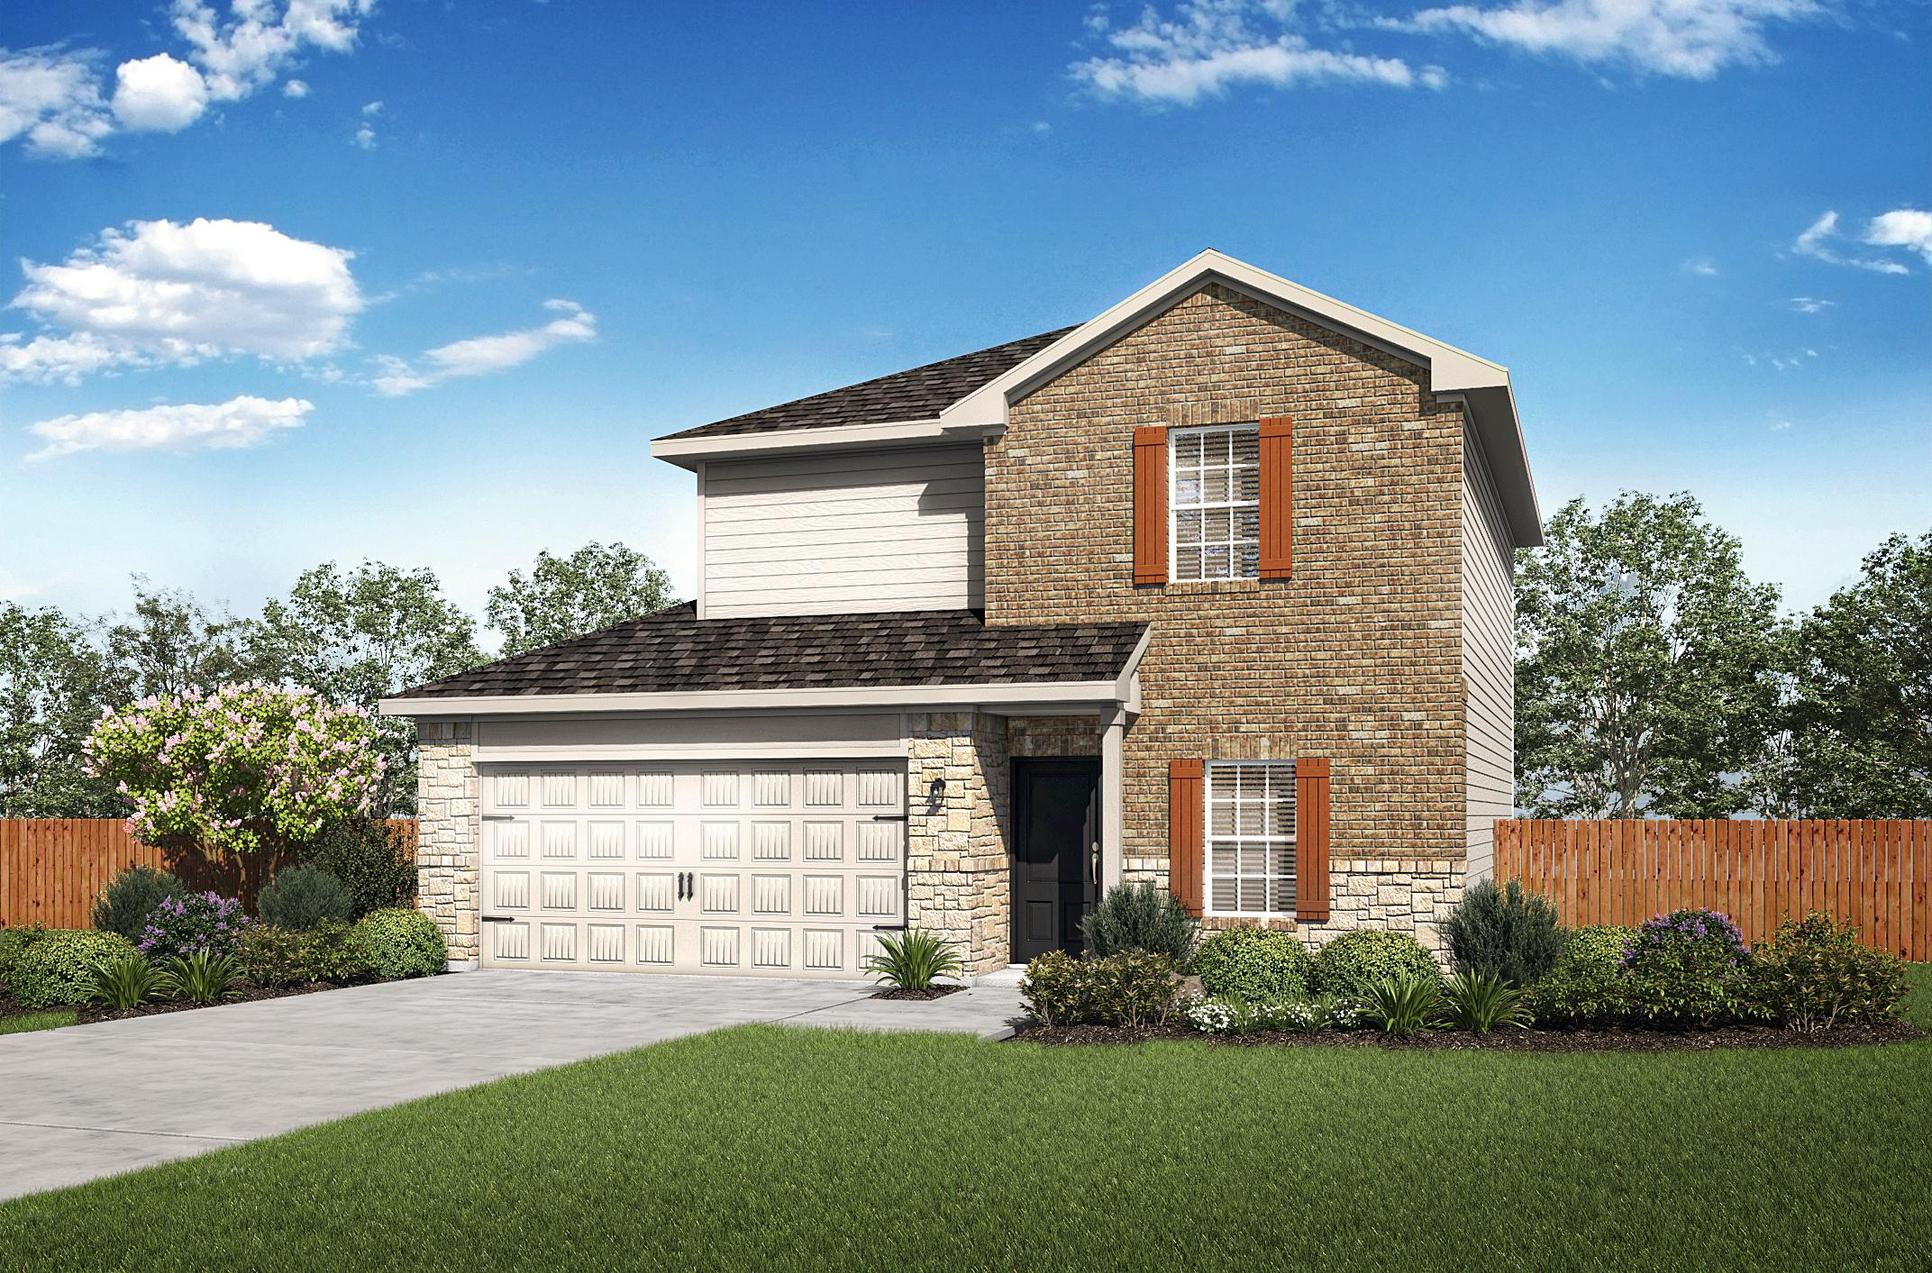 The Carson Plan by LGI Homes:The Carson Plan is a stunning two-story, 3-bedroom home!